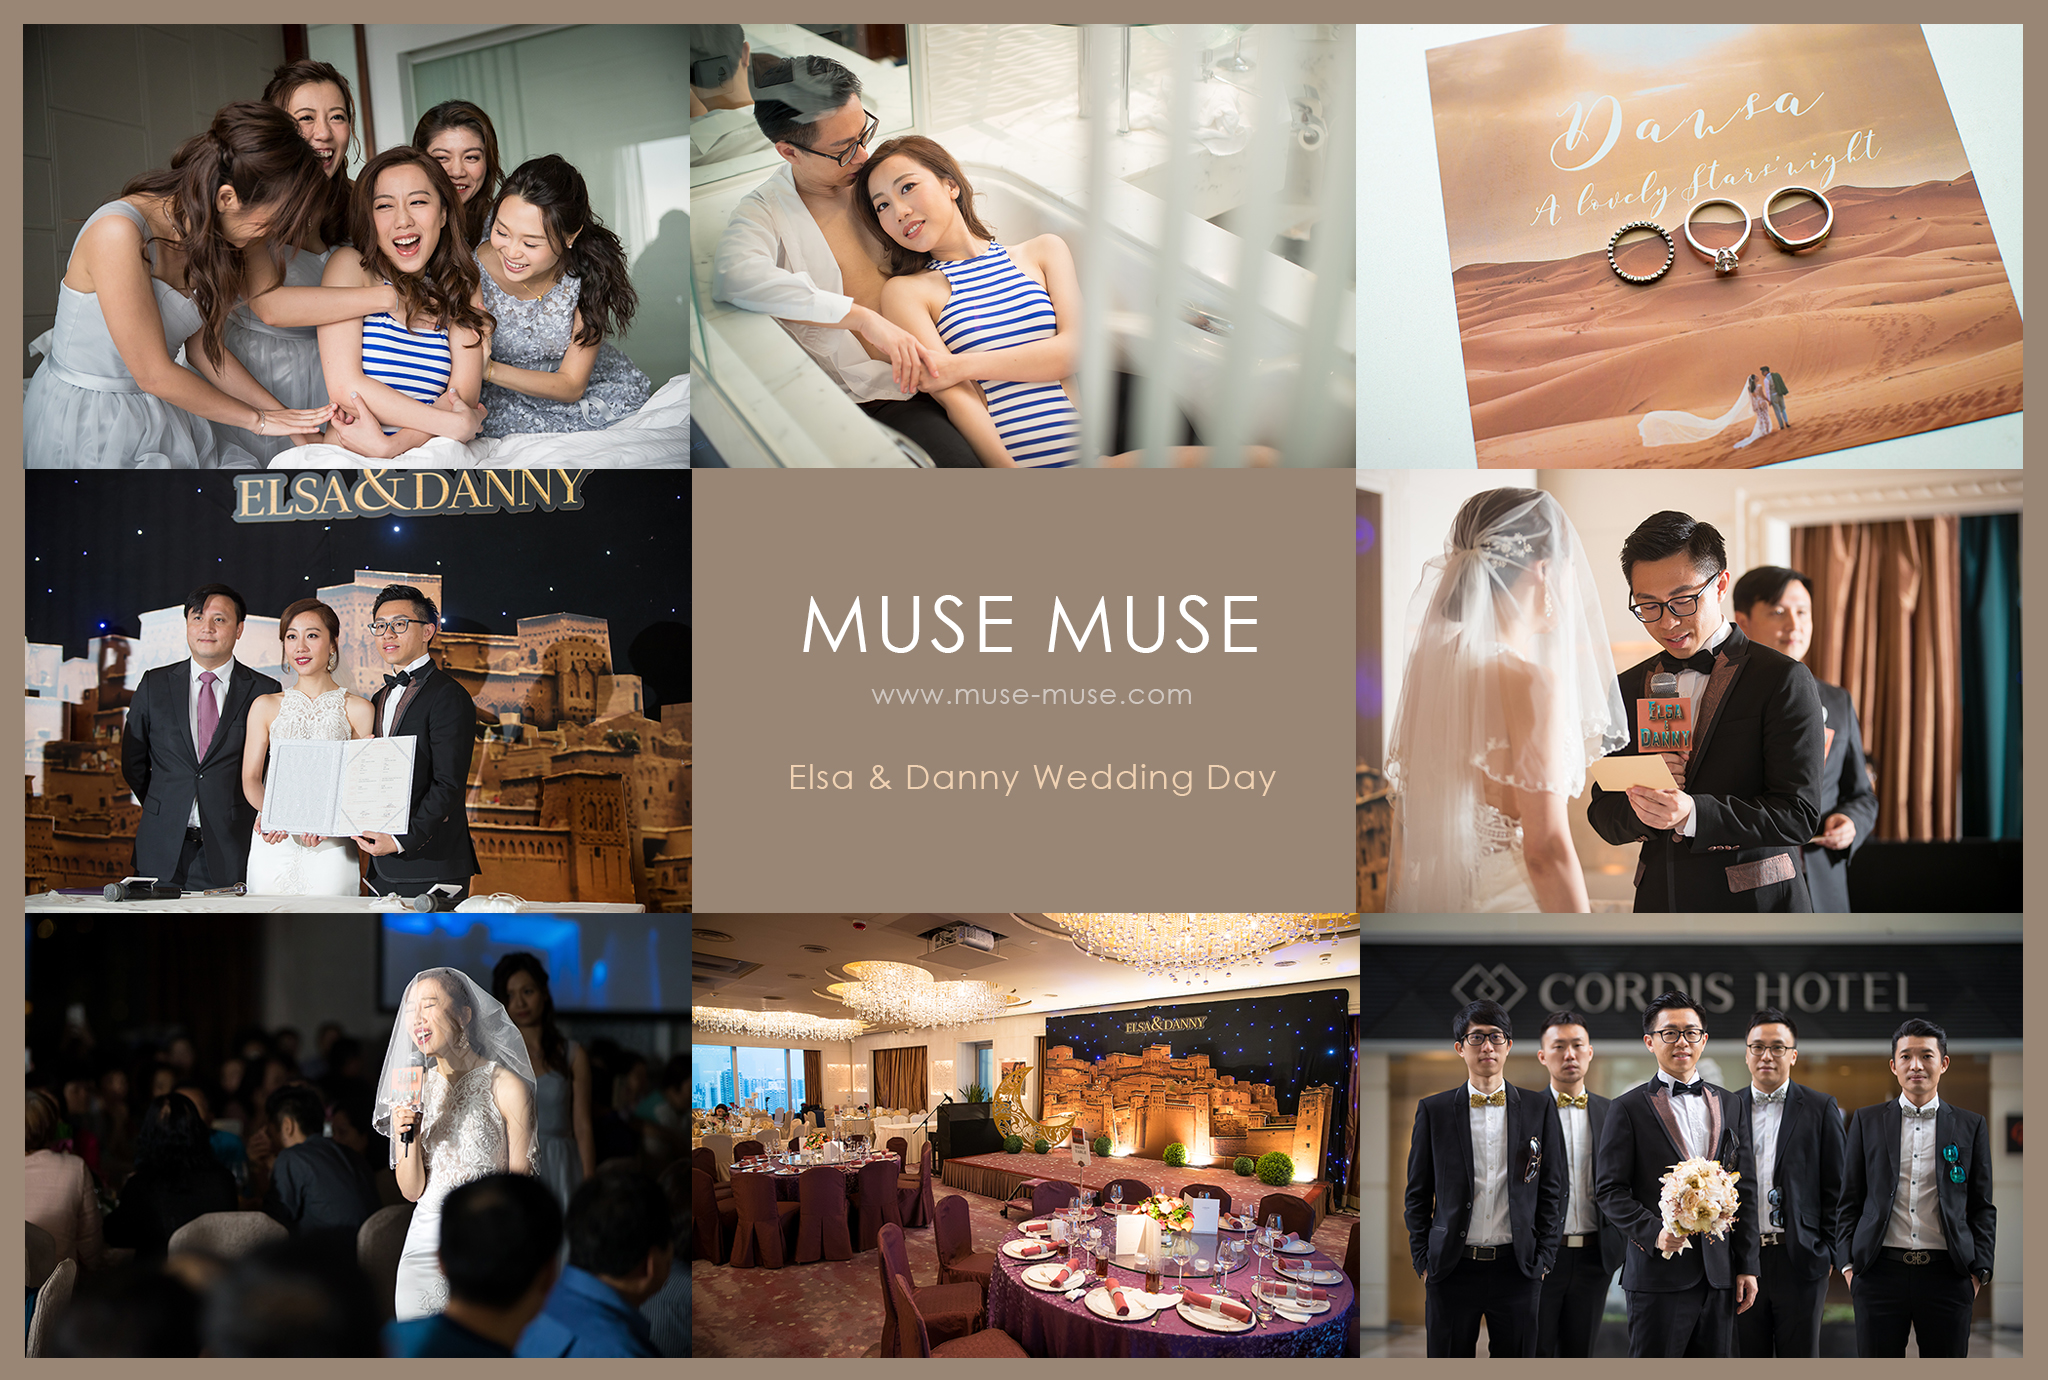 Elsa & Danny Wedding Day - 15 June 2018  by Muse Second Team  2P1V , Half Day Wedding @ Cordis Hotel